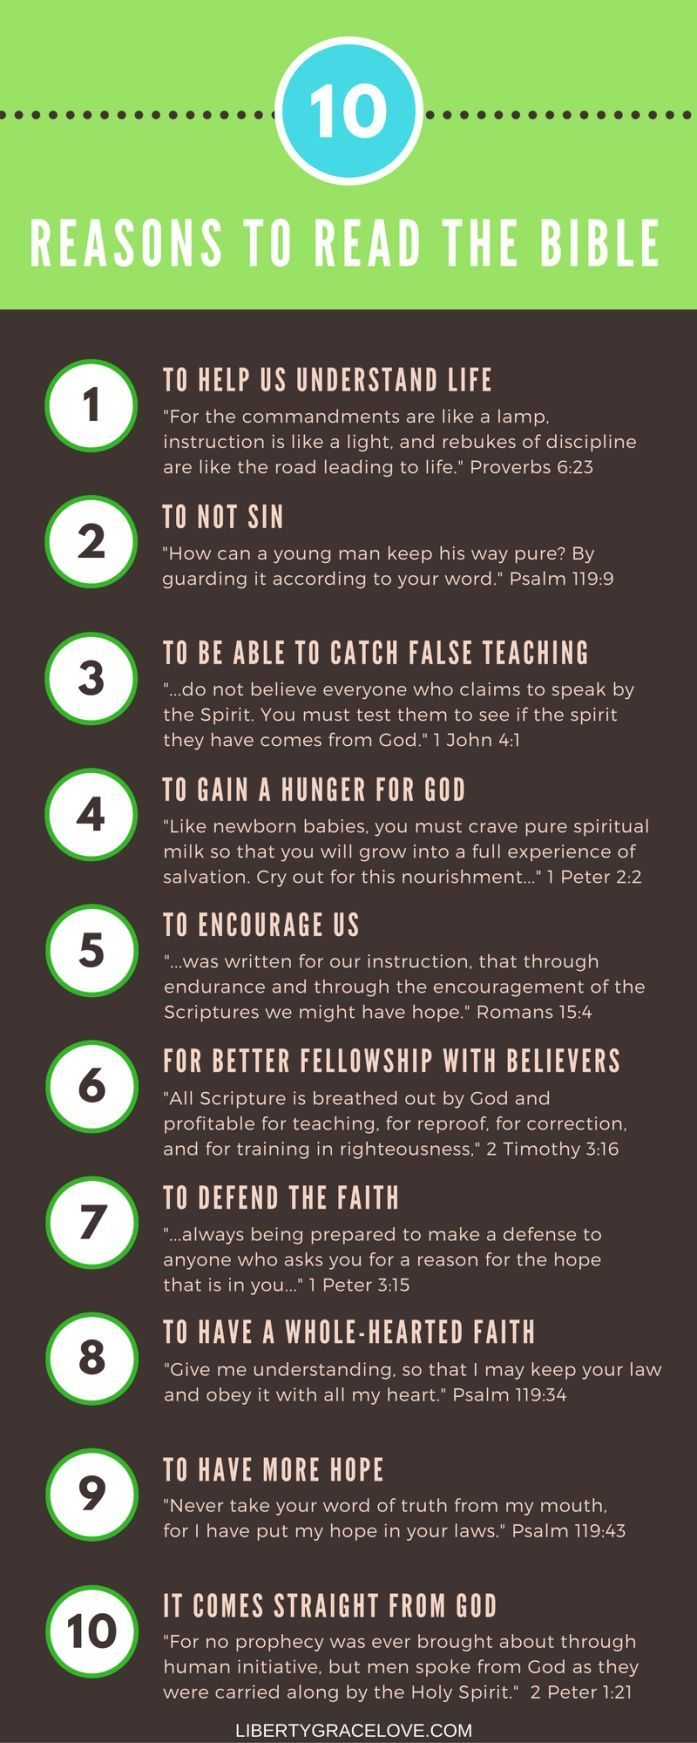 10 reasons why YOU should read the Bible, all from Scripture. The Bible helps encourage us, helps give us a hunger for God, helps us defend the faith, helps us to be able to catch false teaching... and helps us understand life.